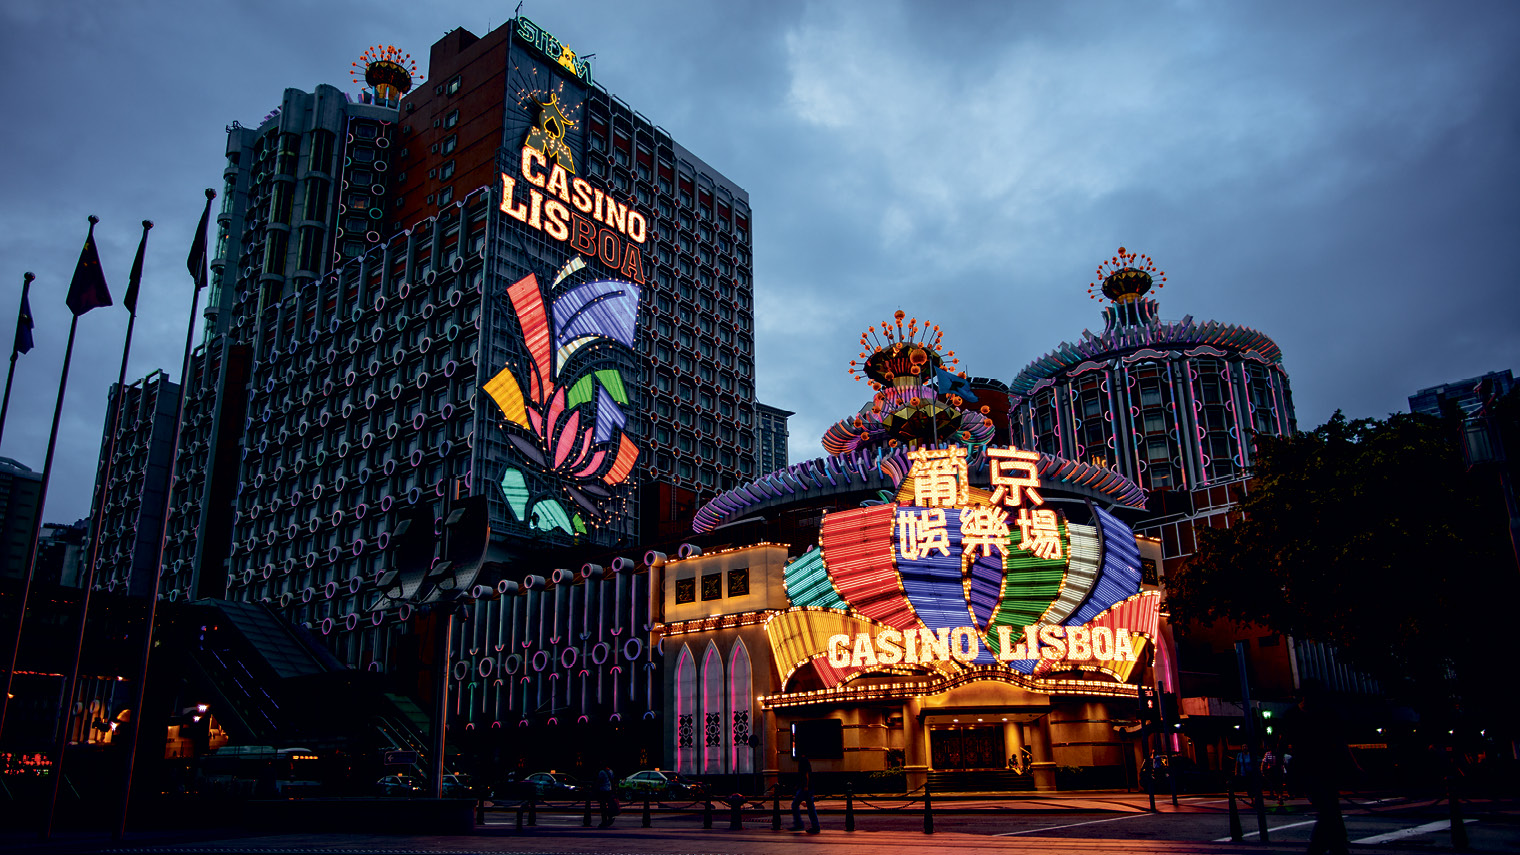 Since being handed back to China in 1999, Macau's economy has depended on the entertainment business